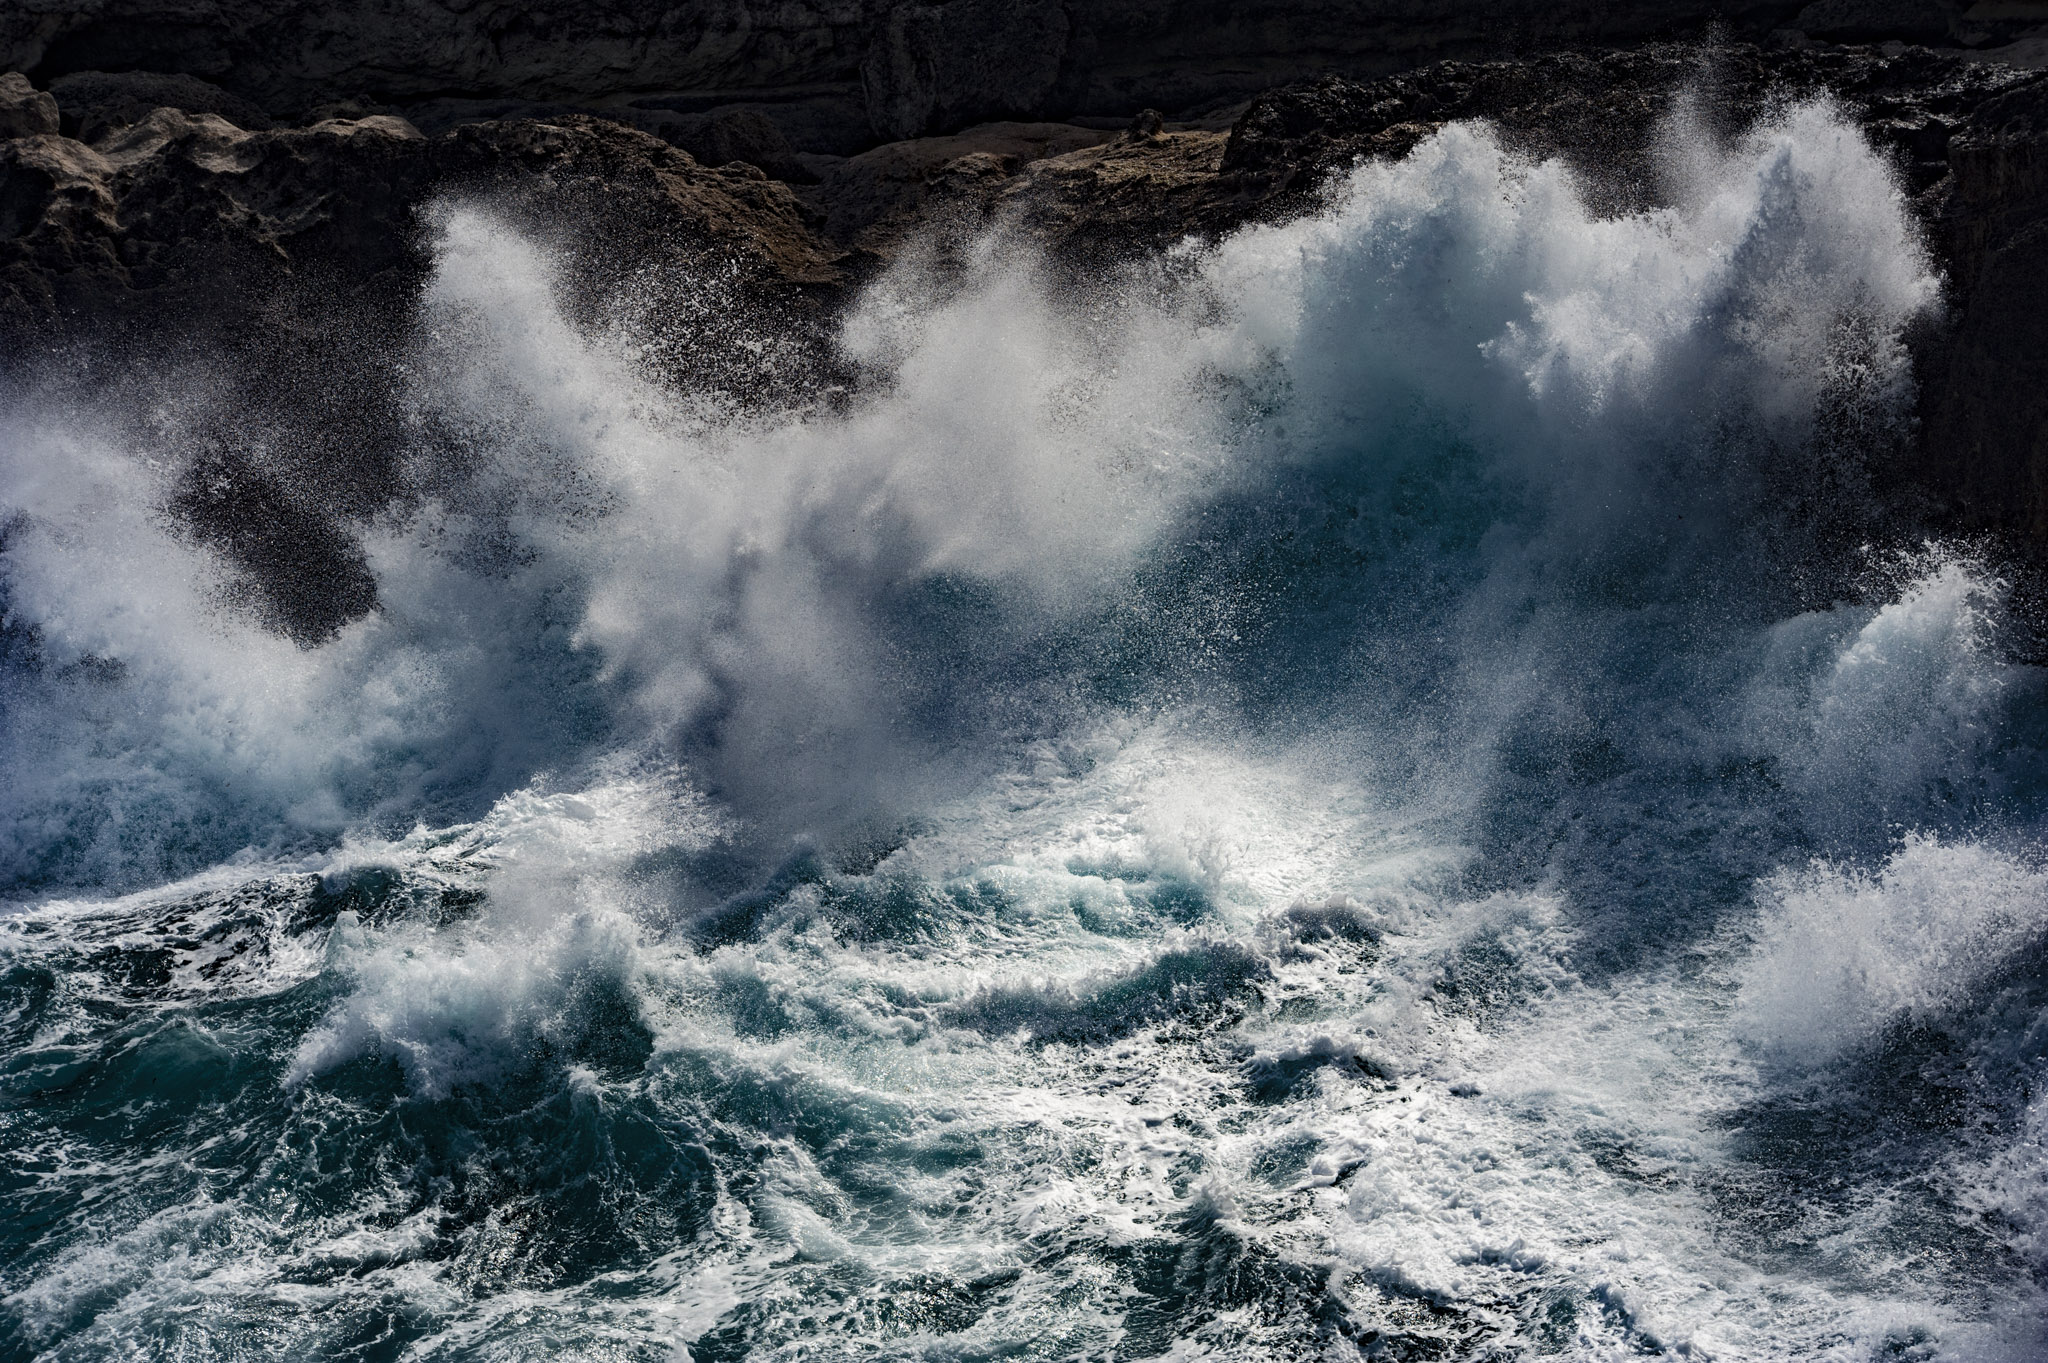 Big waves in a stormy weather make harder sight the whales. (Lampedusa 2018)